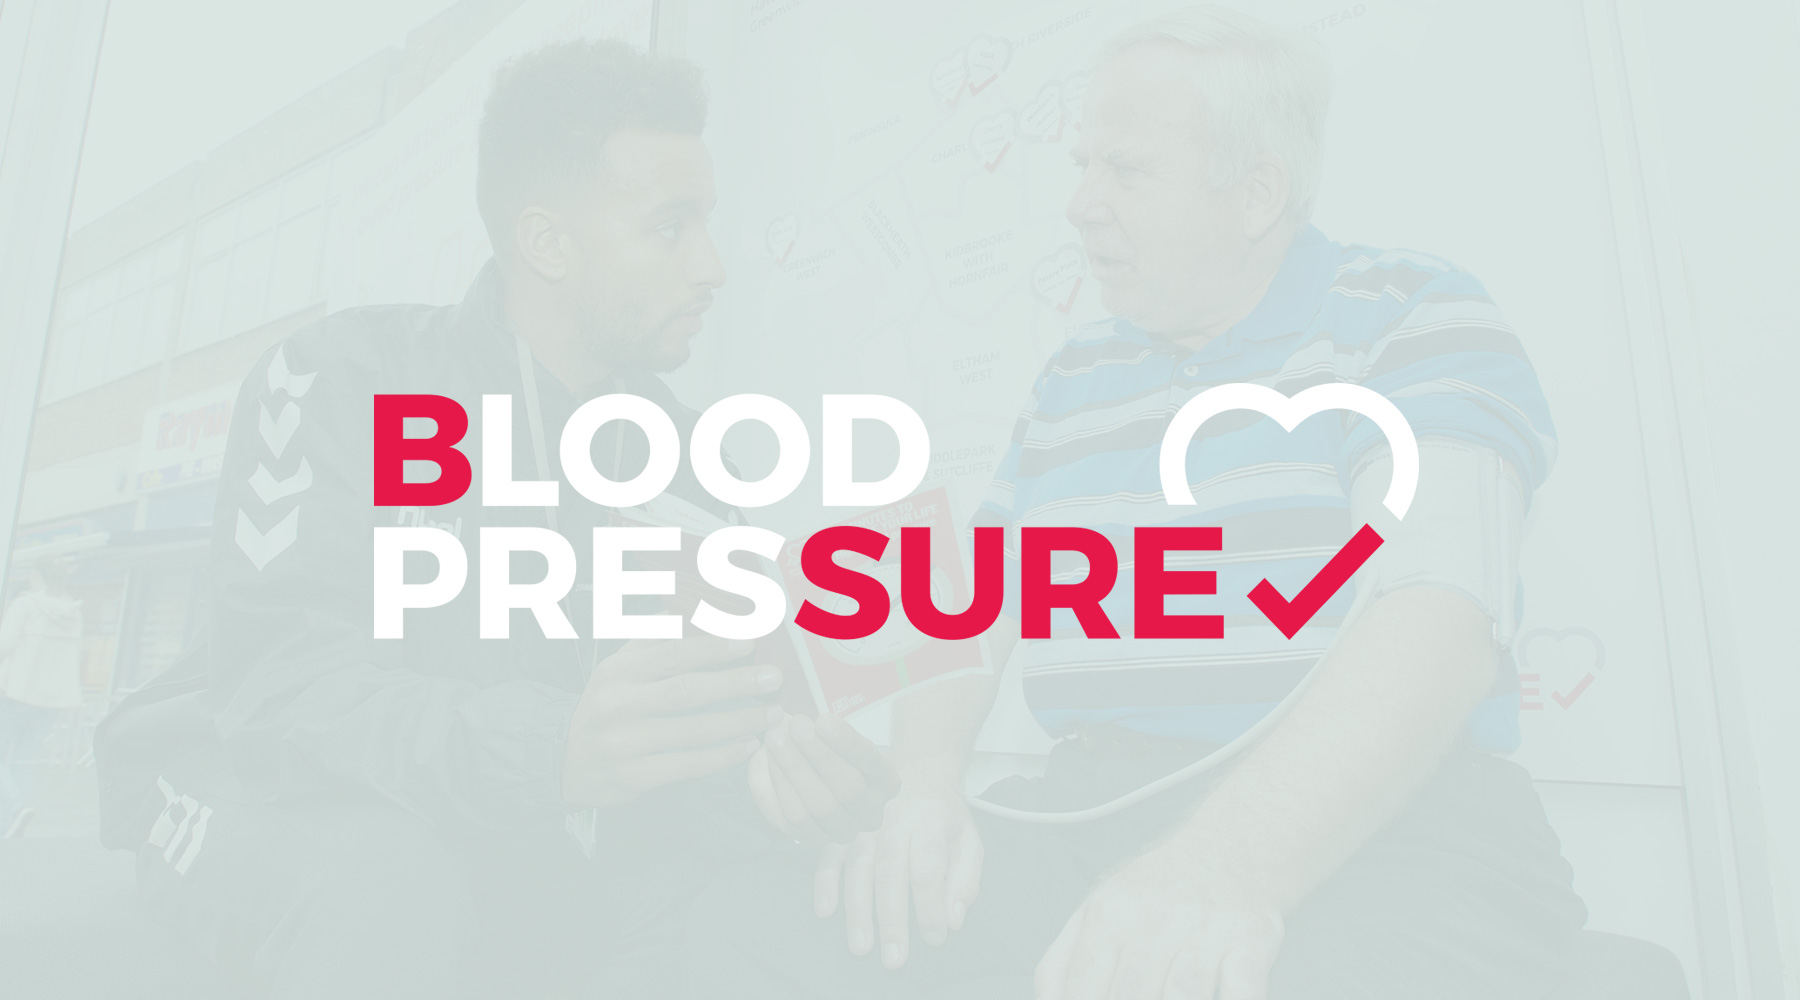 Be Sure Blood Pressure roadshow